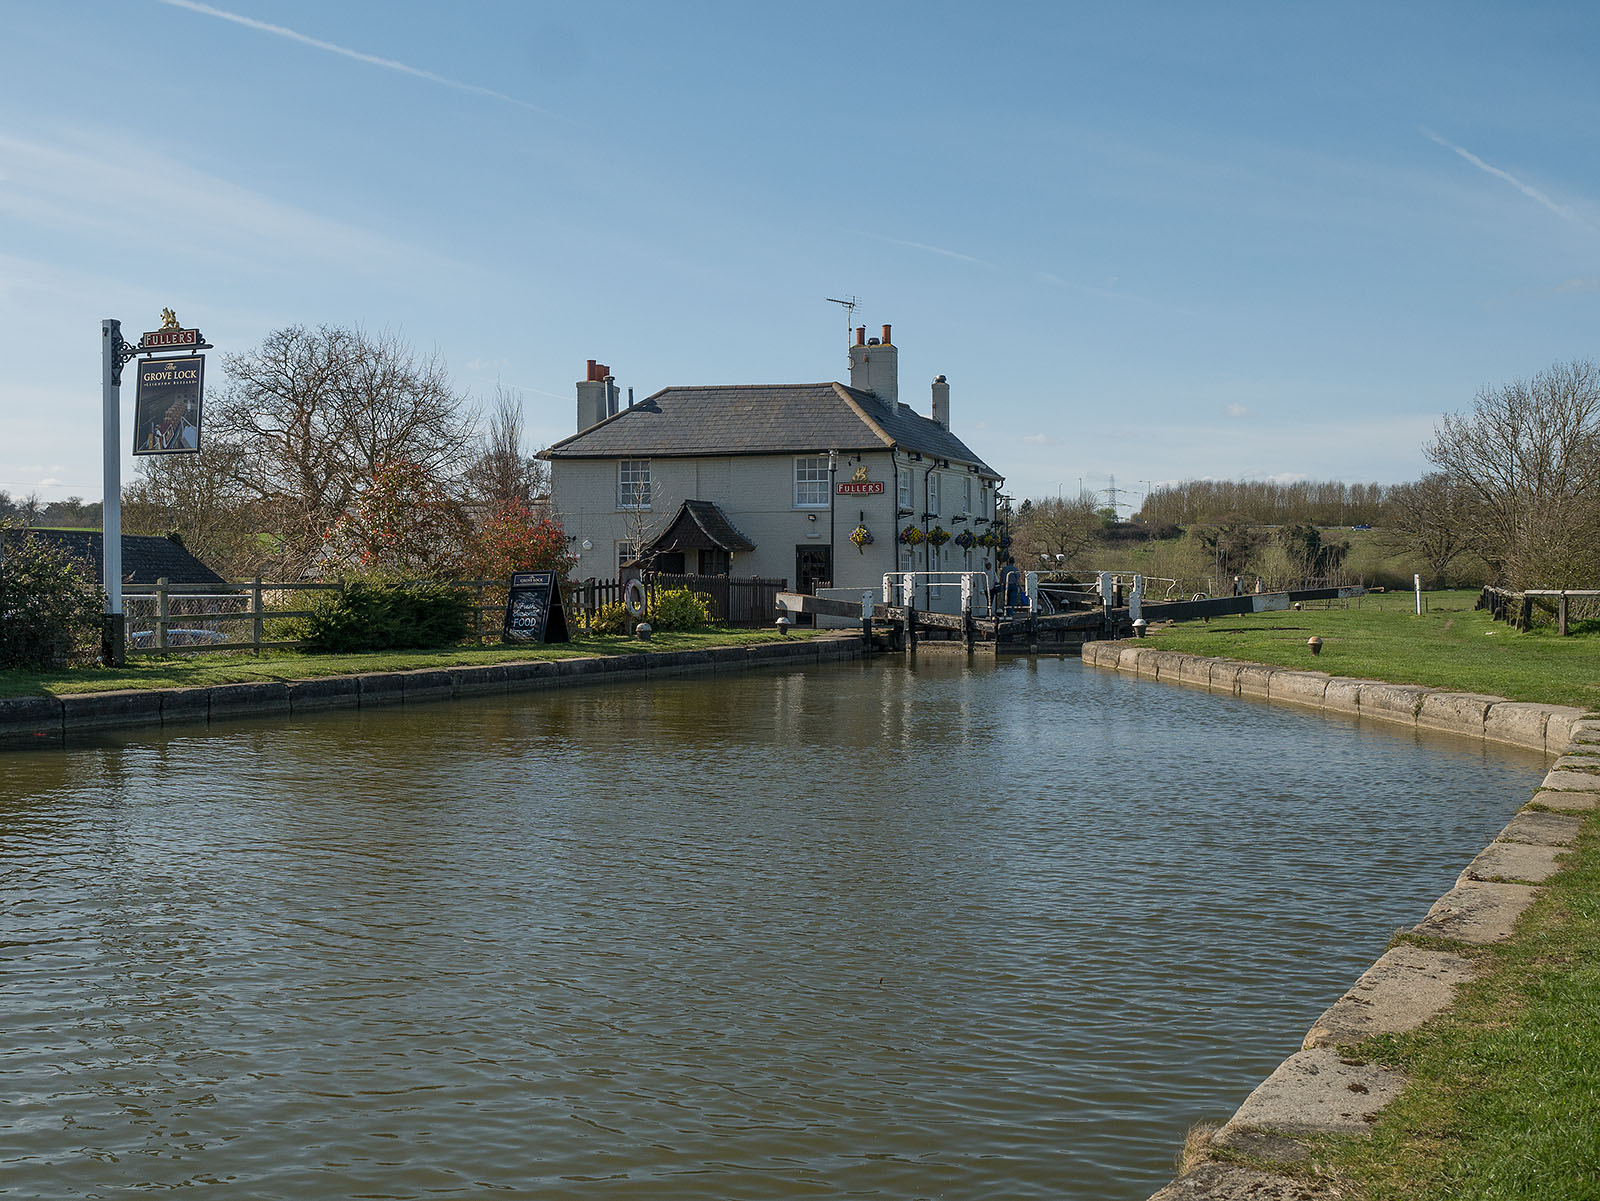 Approaching Grove lock